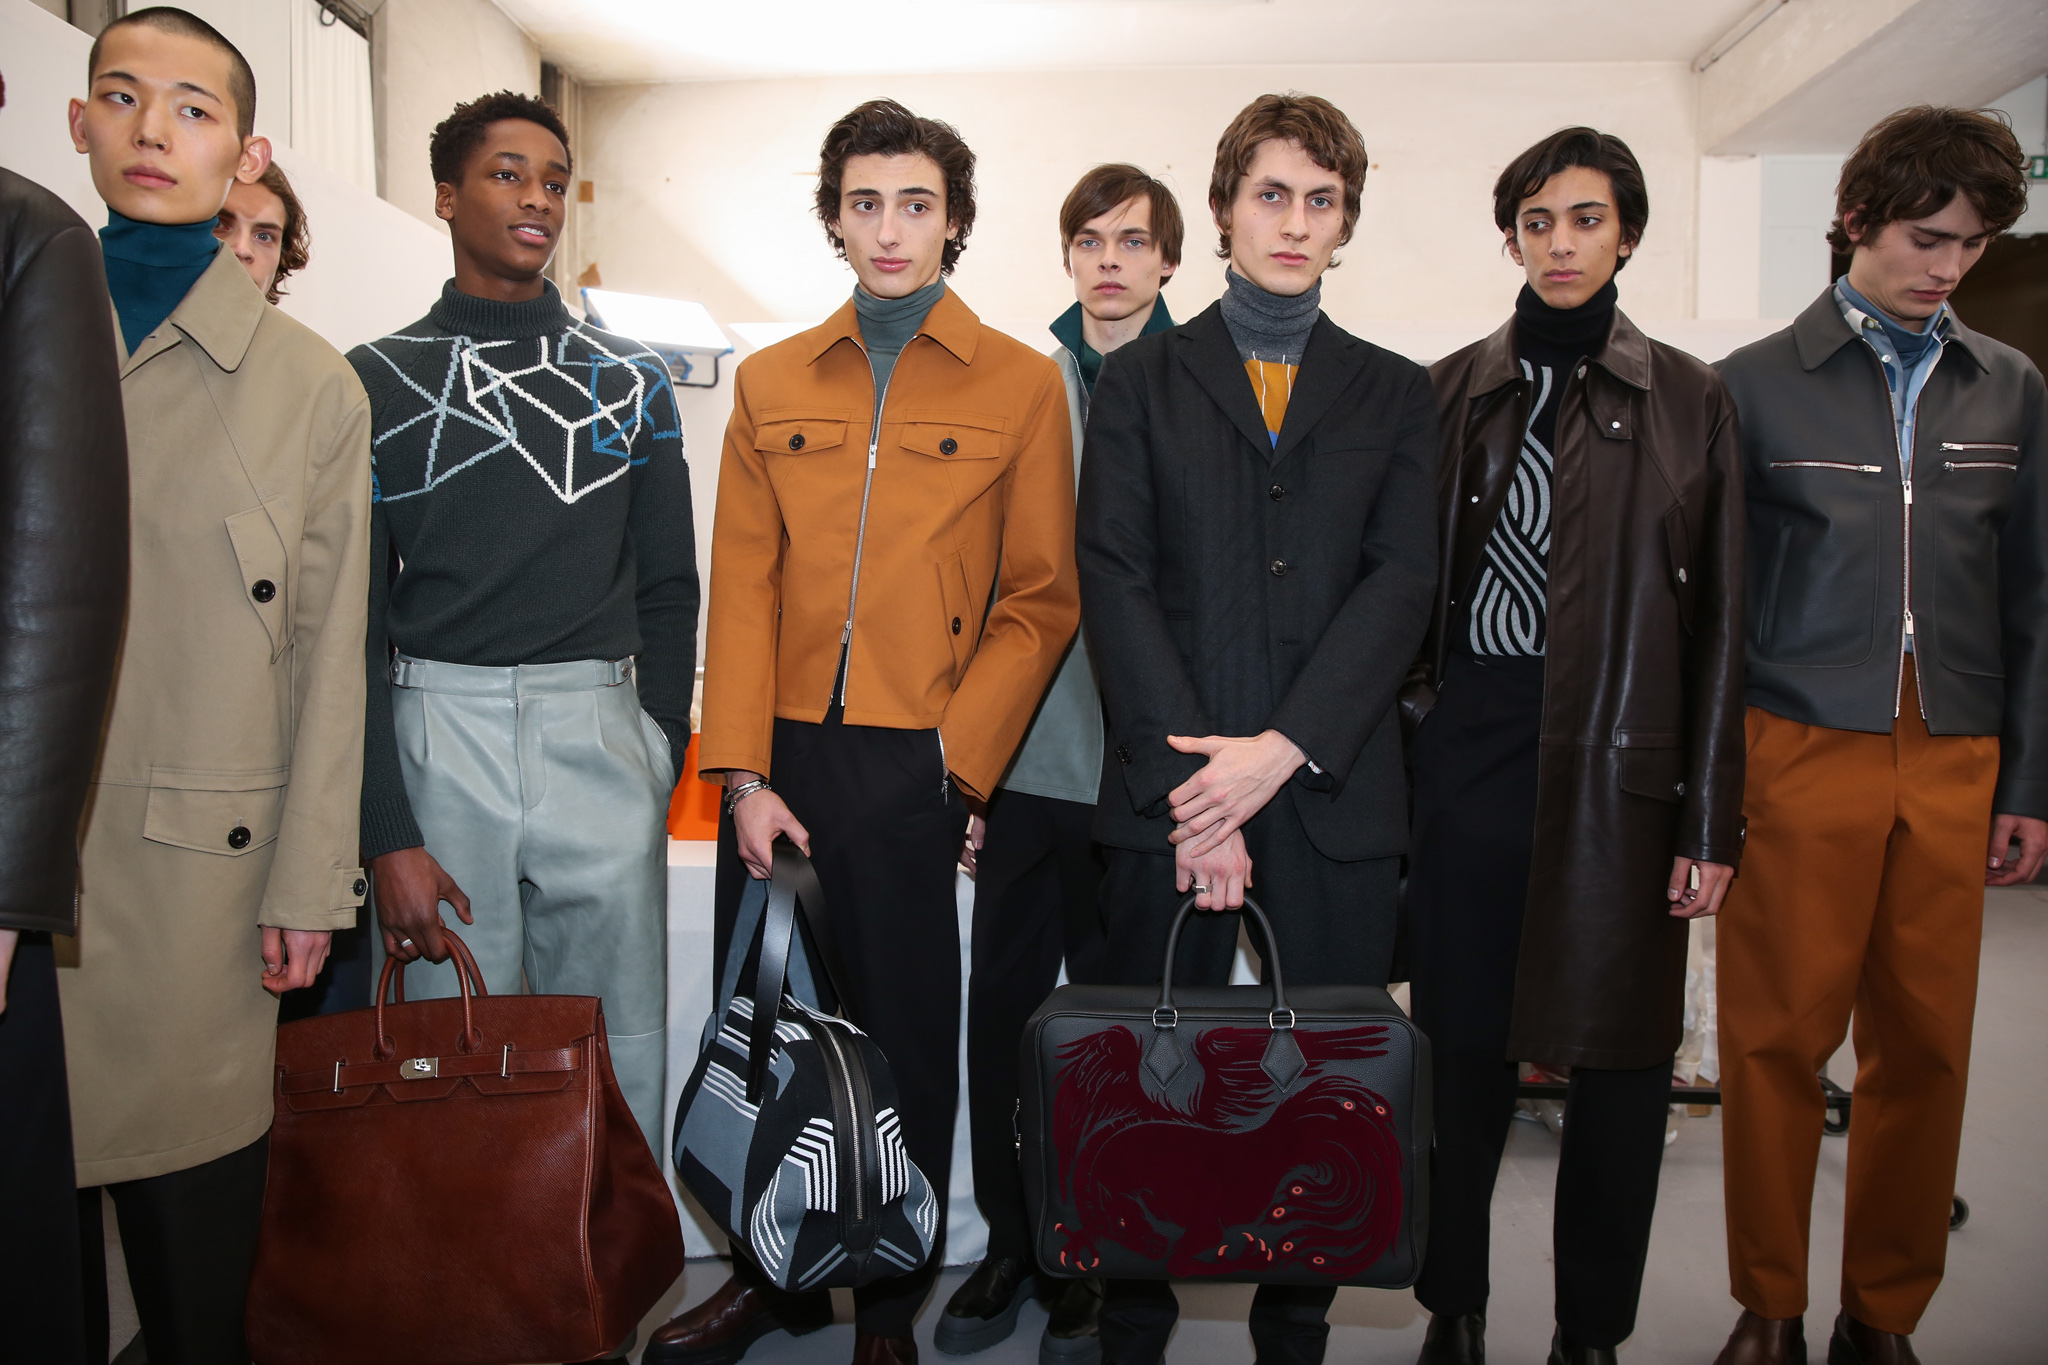 AW/19 Menswear Trend Report